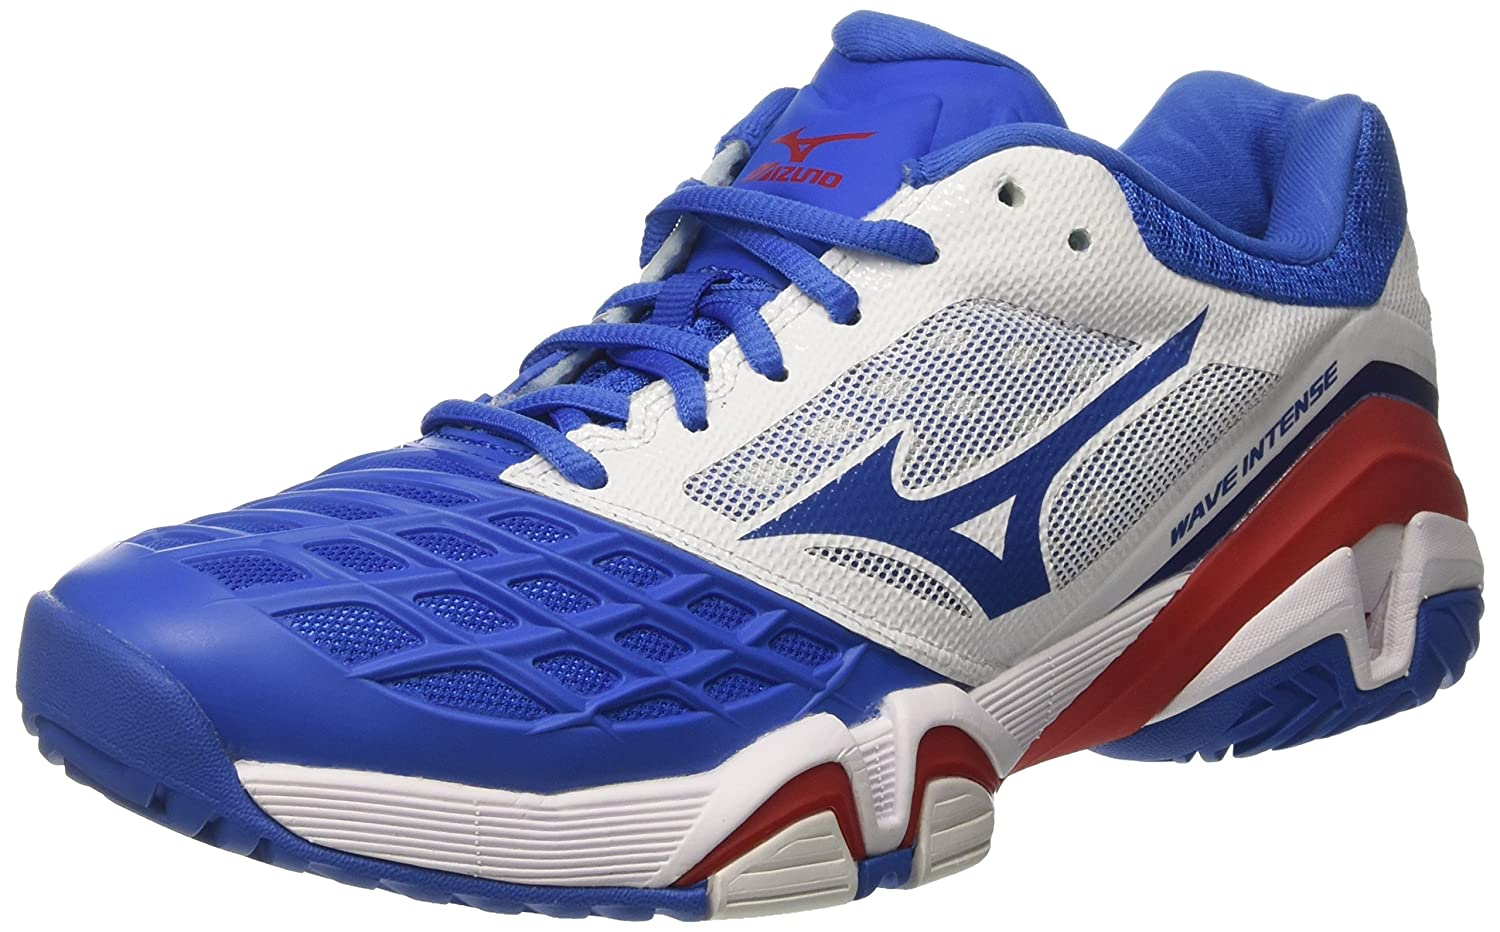 Mizuno Herren Wave Intense Tour AC Tennisschuhe  42.5 EU|Multicolore (White/Strongblue/Chinesered)